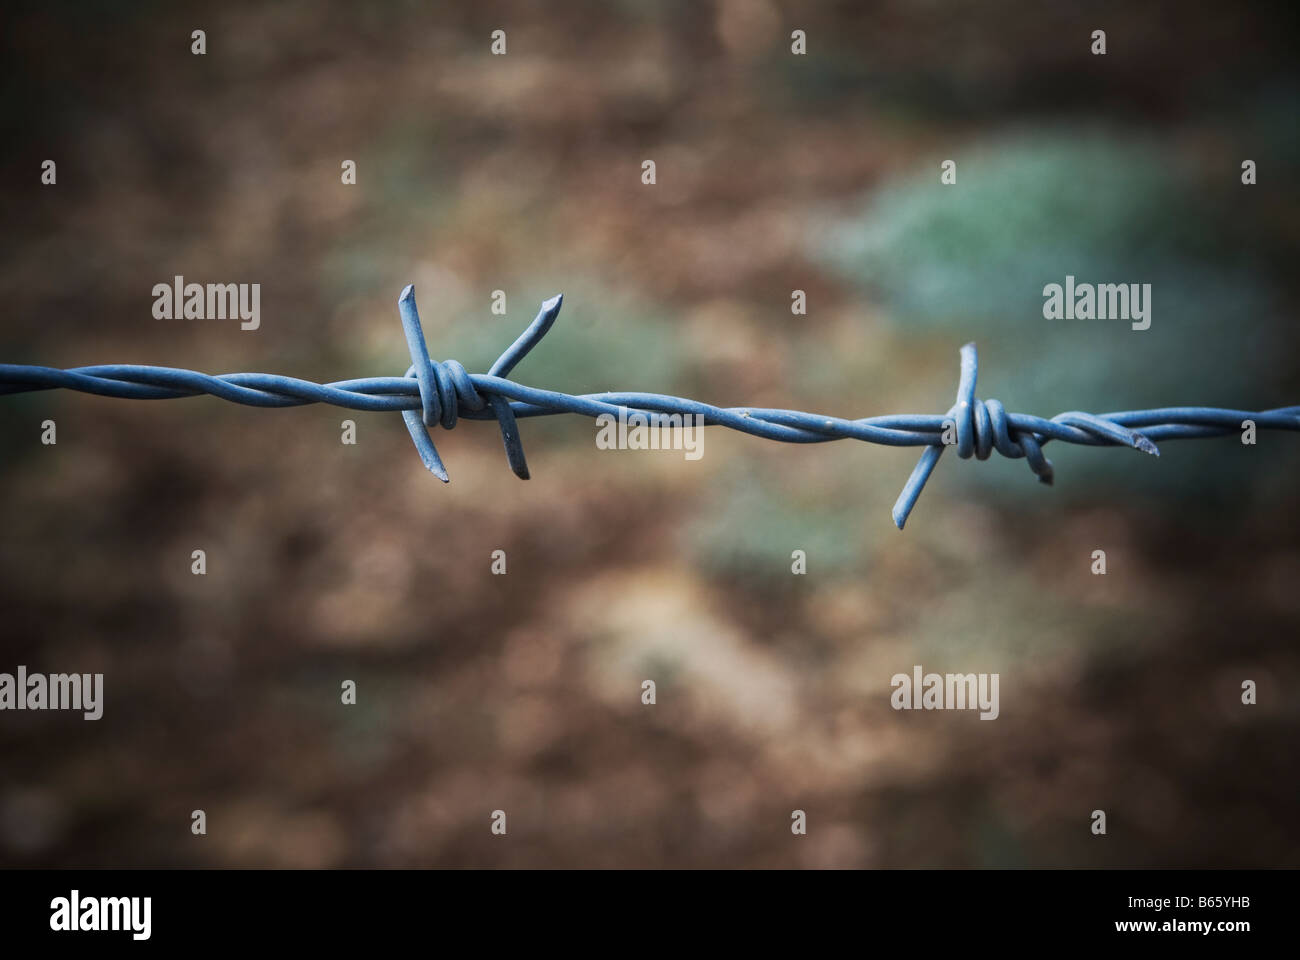 Barbed wire Lebanon Middle East - Stock Image